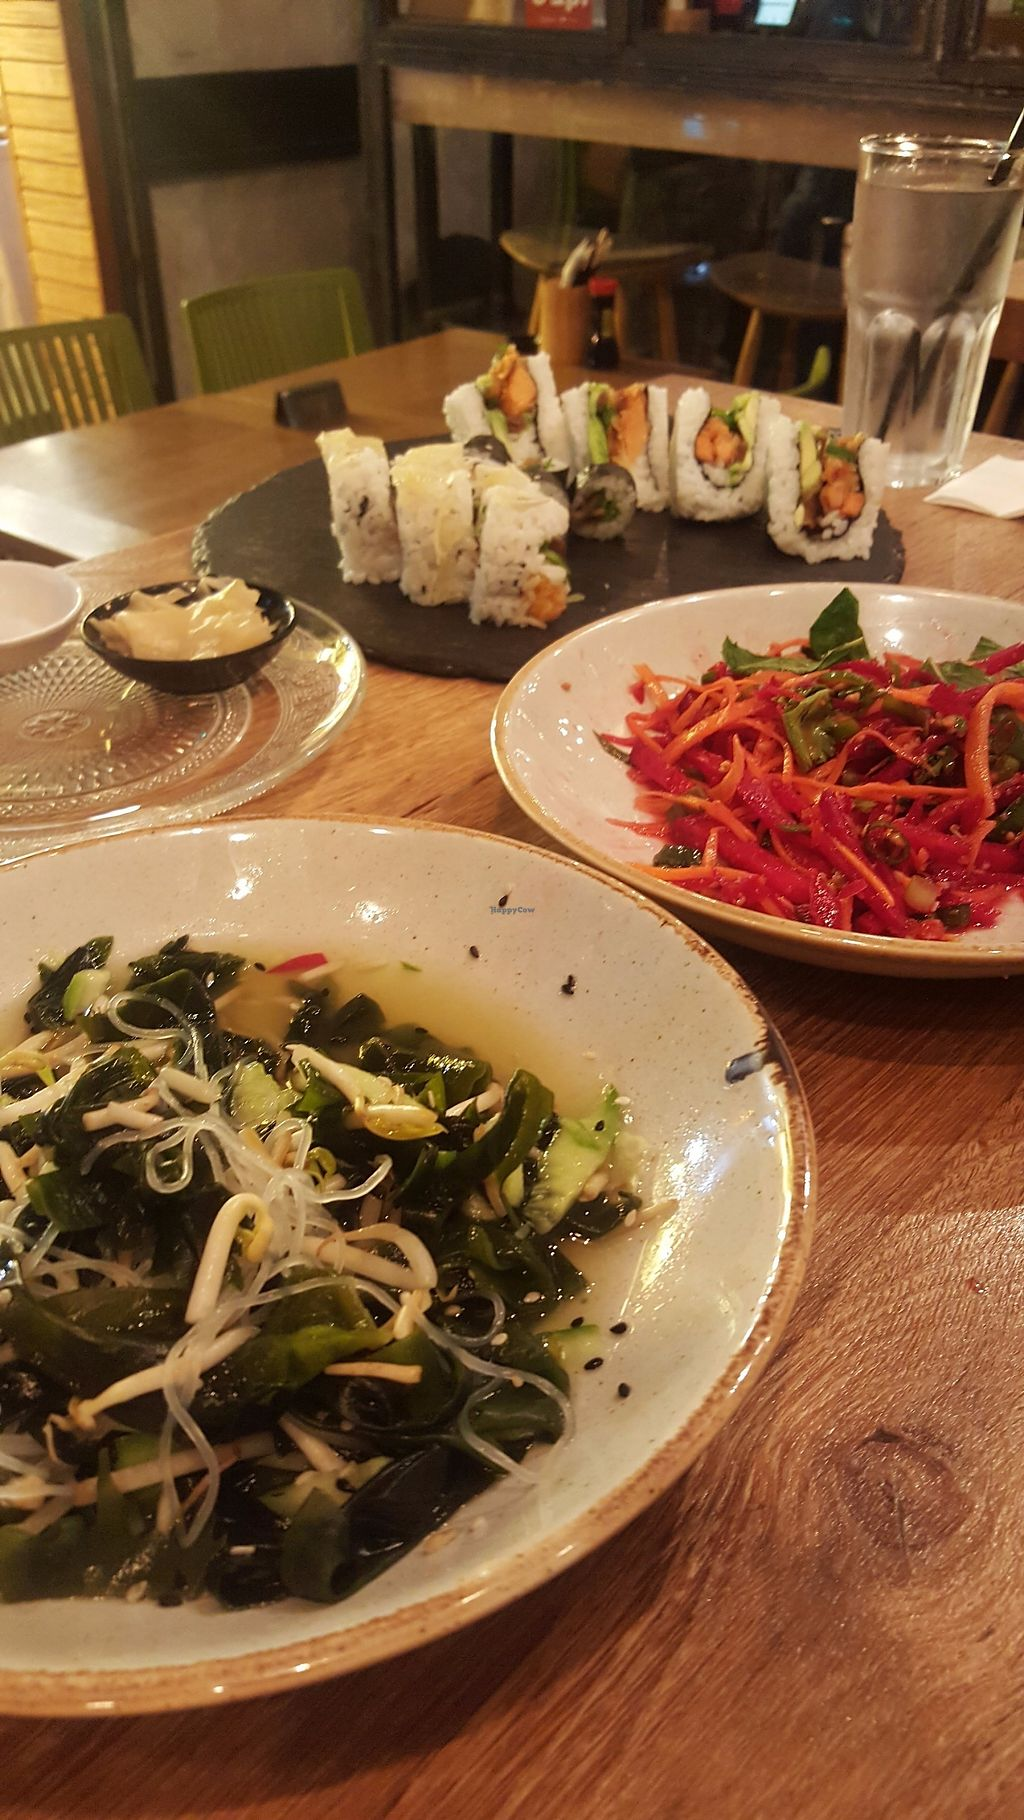 "Photo of Yan Sushi House  by <a href=""/members/profile/EinavShimoni"">EinavShimoni</a> <br/>vegan asian salads, partly eaten <br/> November 25, 2017  - <a href='/contact/abuse/image/105918/329124'>Report</a>"